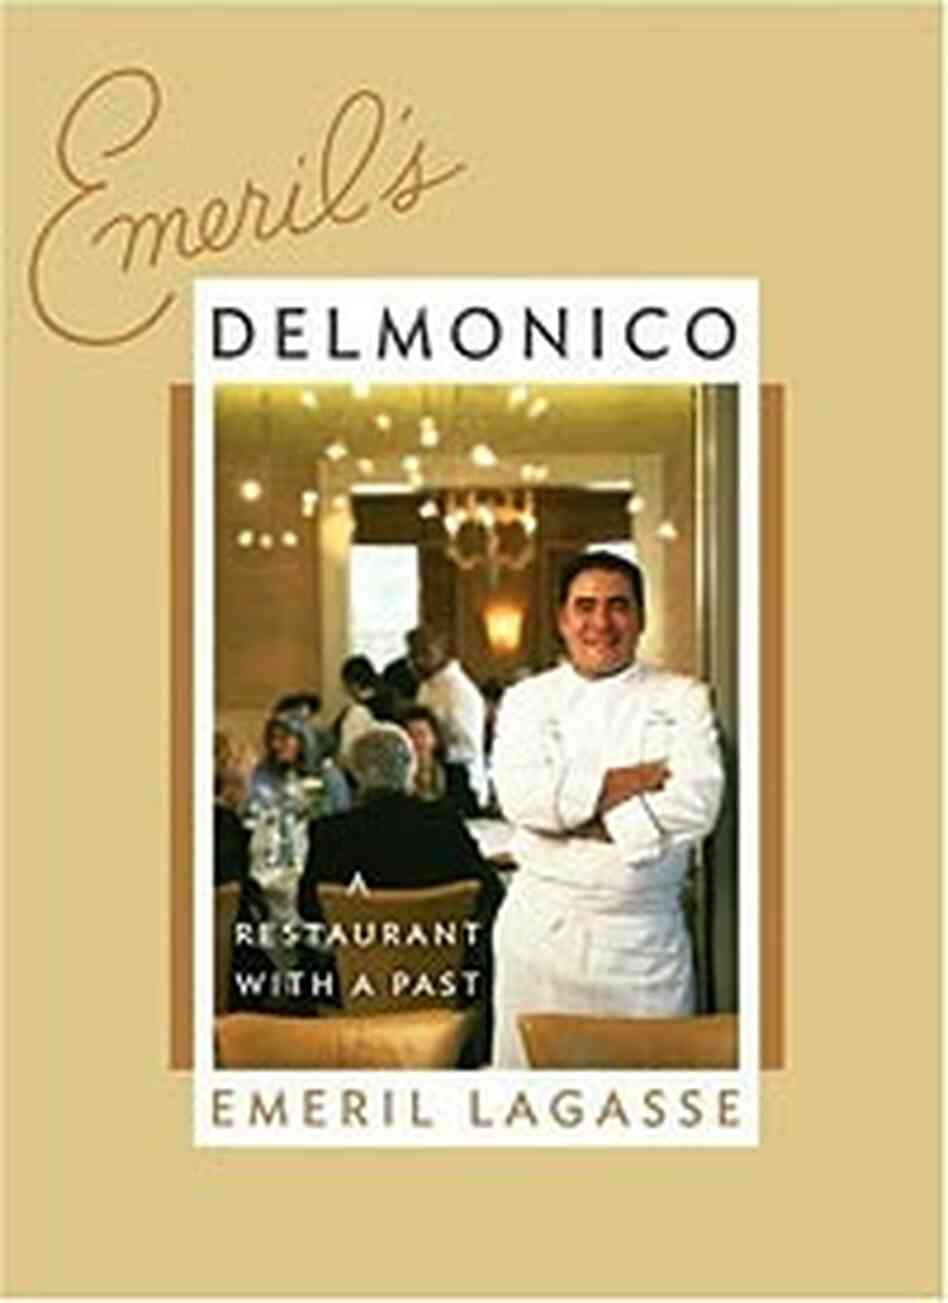 Cover of Emeril Lagasse's latest cookbook, 'Emeril's Delmonico'